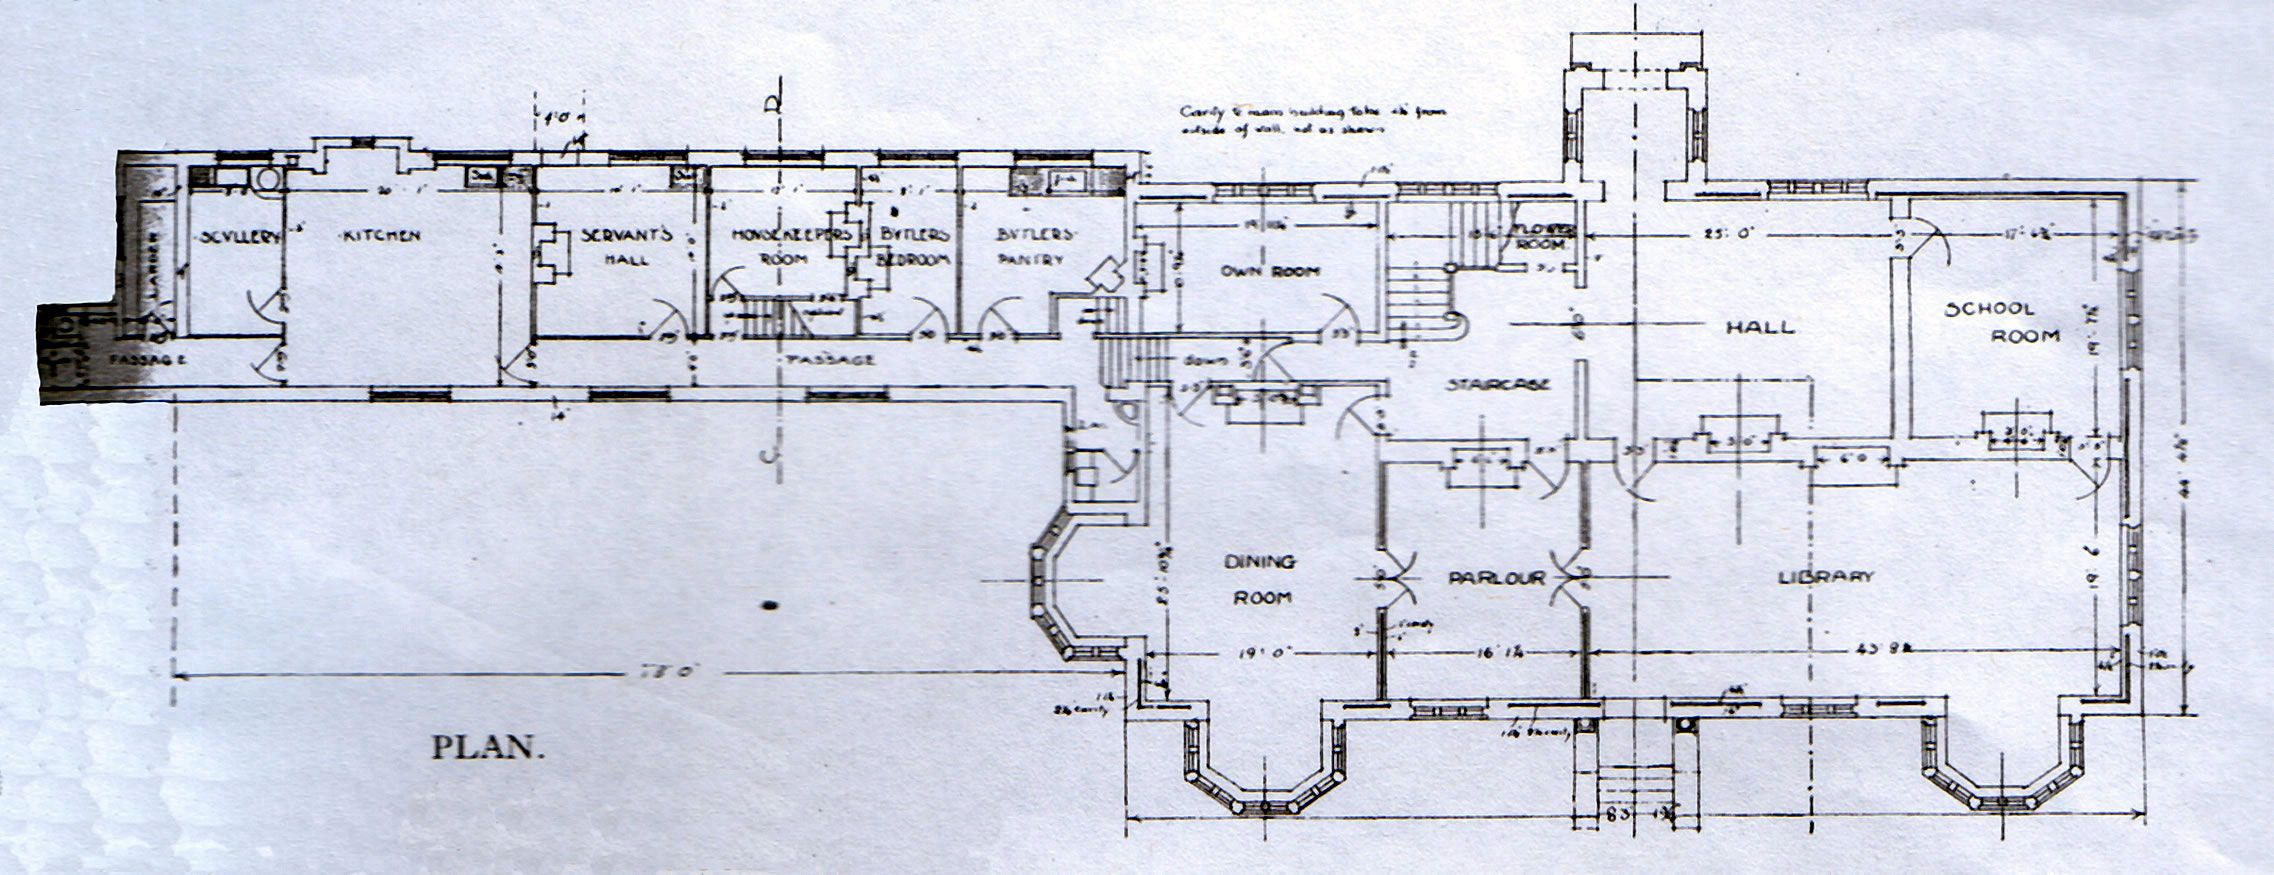 Furthermore medieval manor house on floor plans with central - White House Floor Plan Us Presidents Pinterest White Houses And House